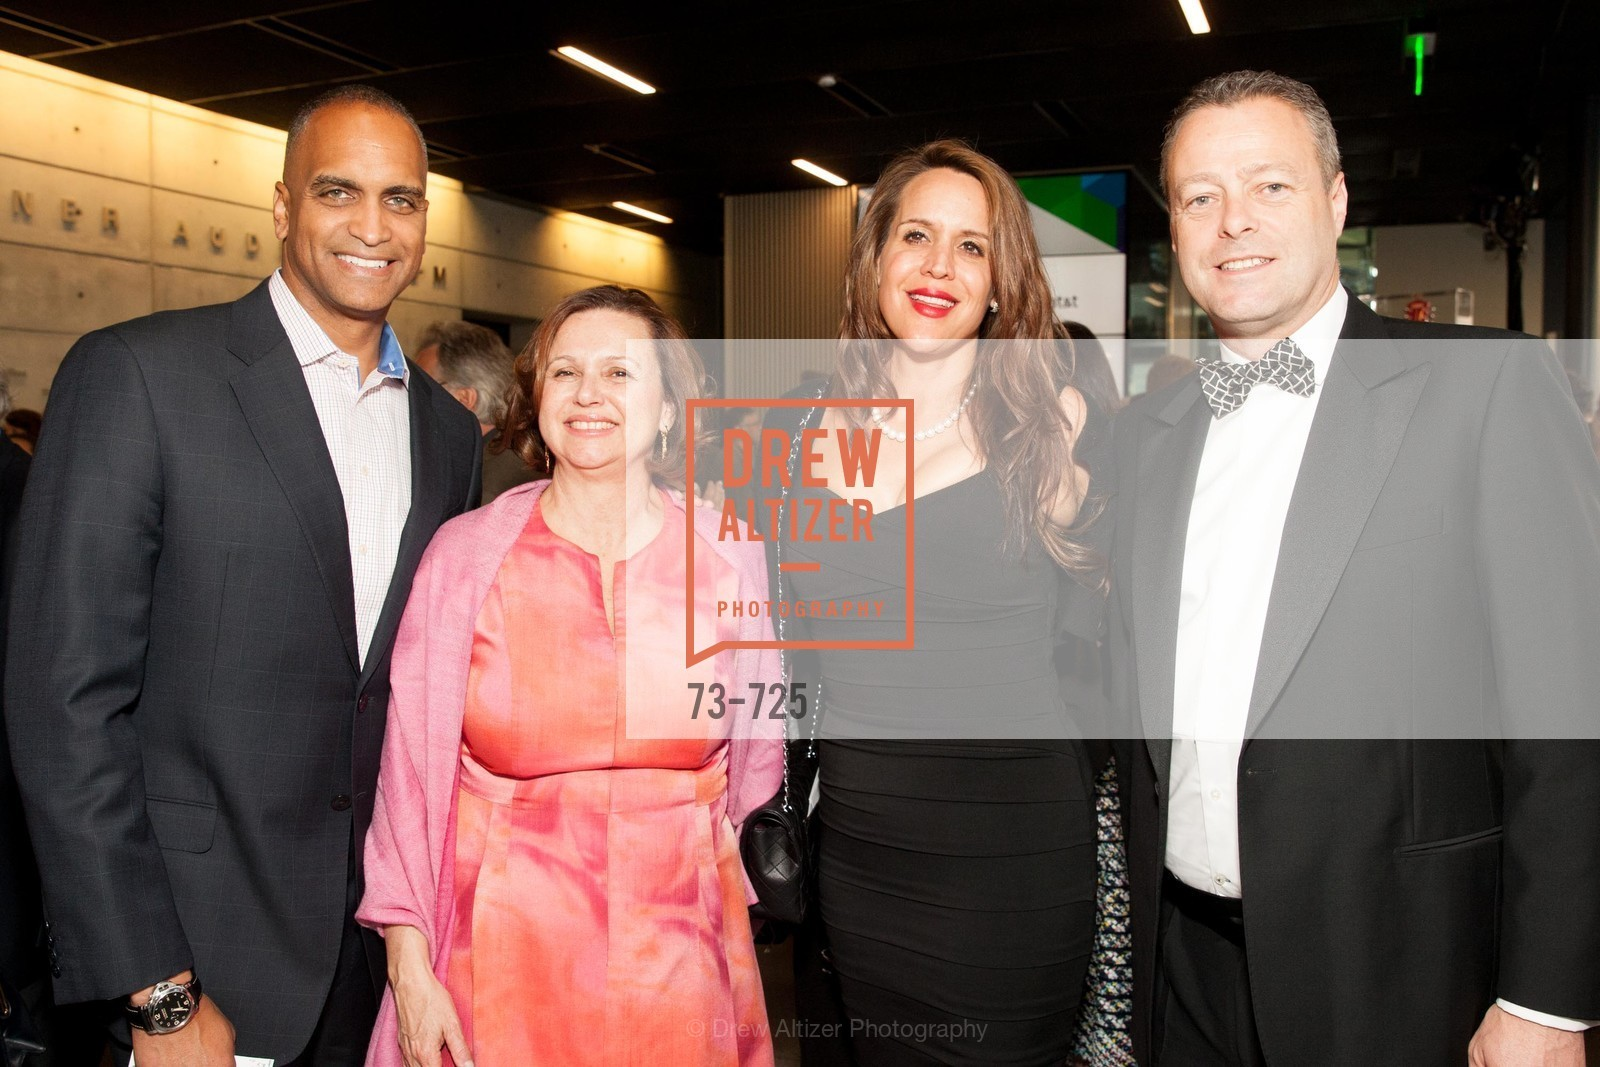 Harvey Anderson, Linda Burch, COMMON SENSE Media Awards 2015, US, May 13th, 2015,Drew Altizer, Drew Altizer Photography, full-service agency, private events, San Francisco photographer, photographer california